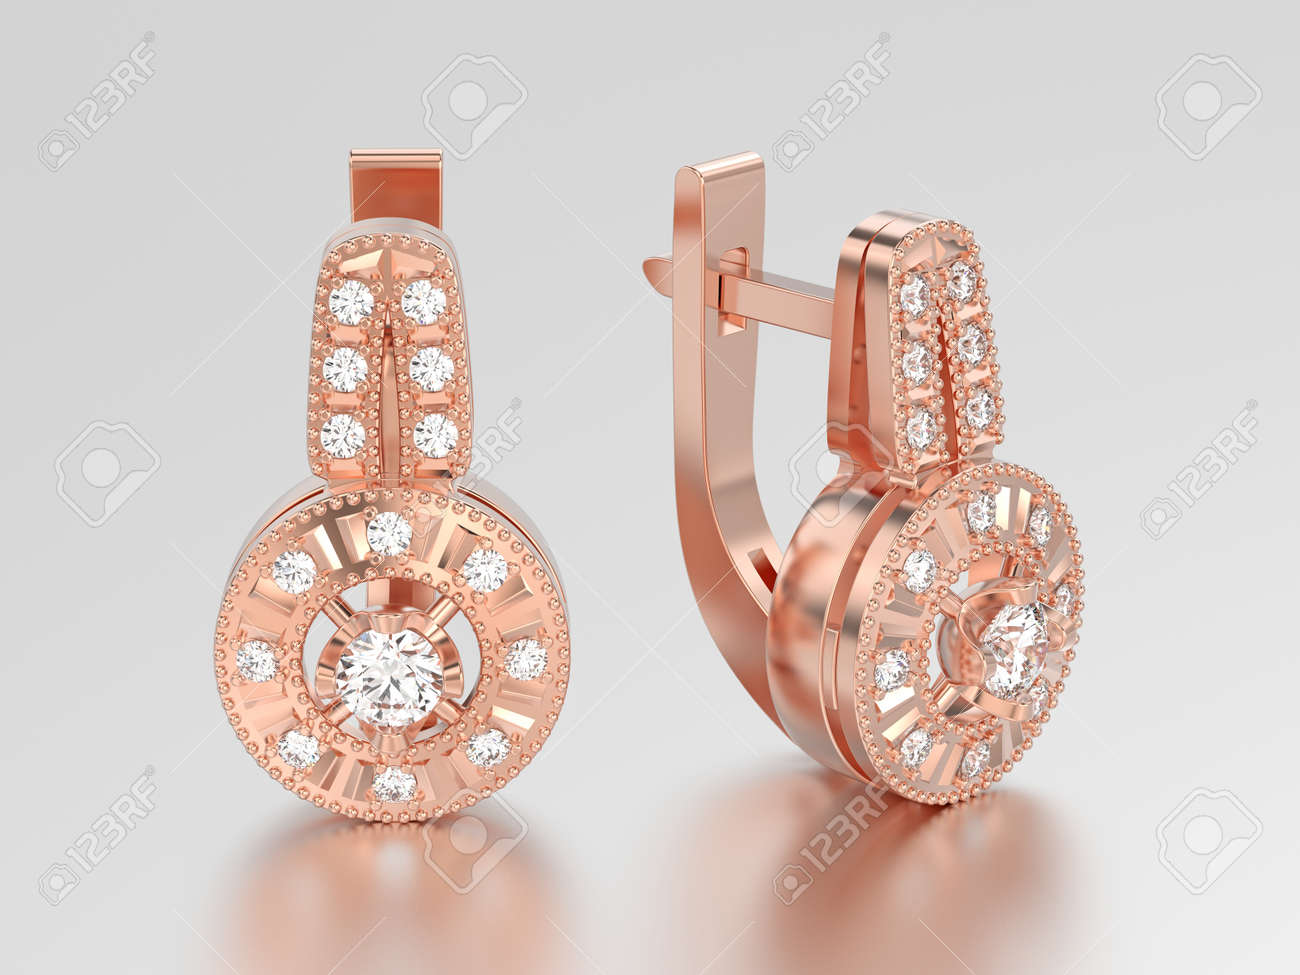 3D Illustration Rose Gold Decorative Diamond Earrings With Hinged